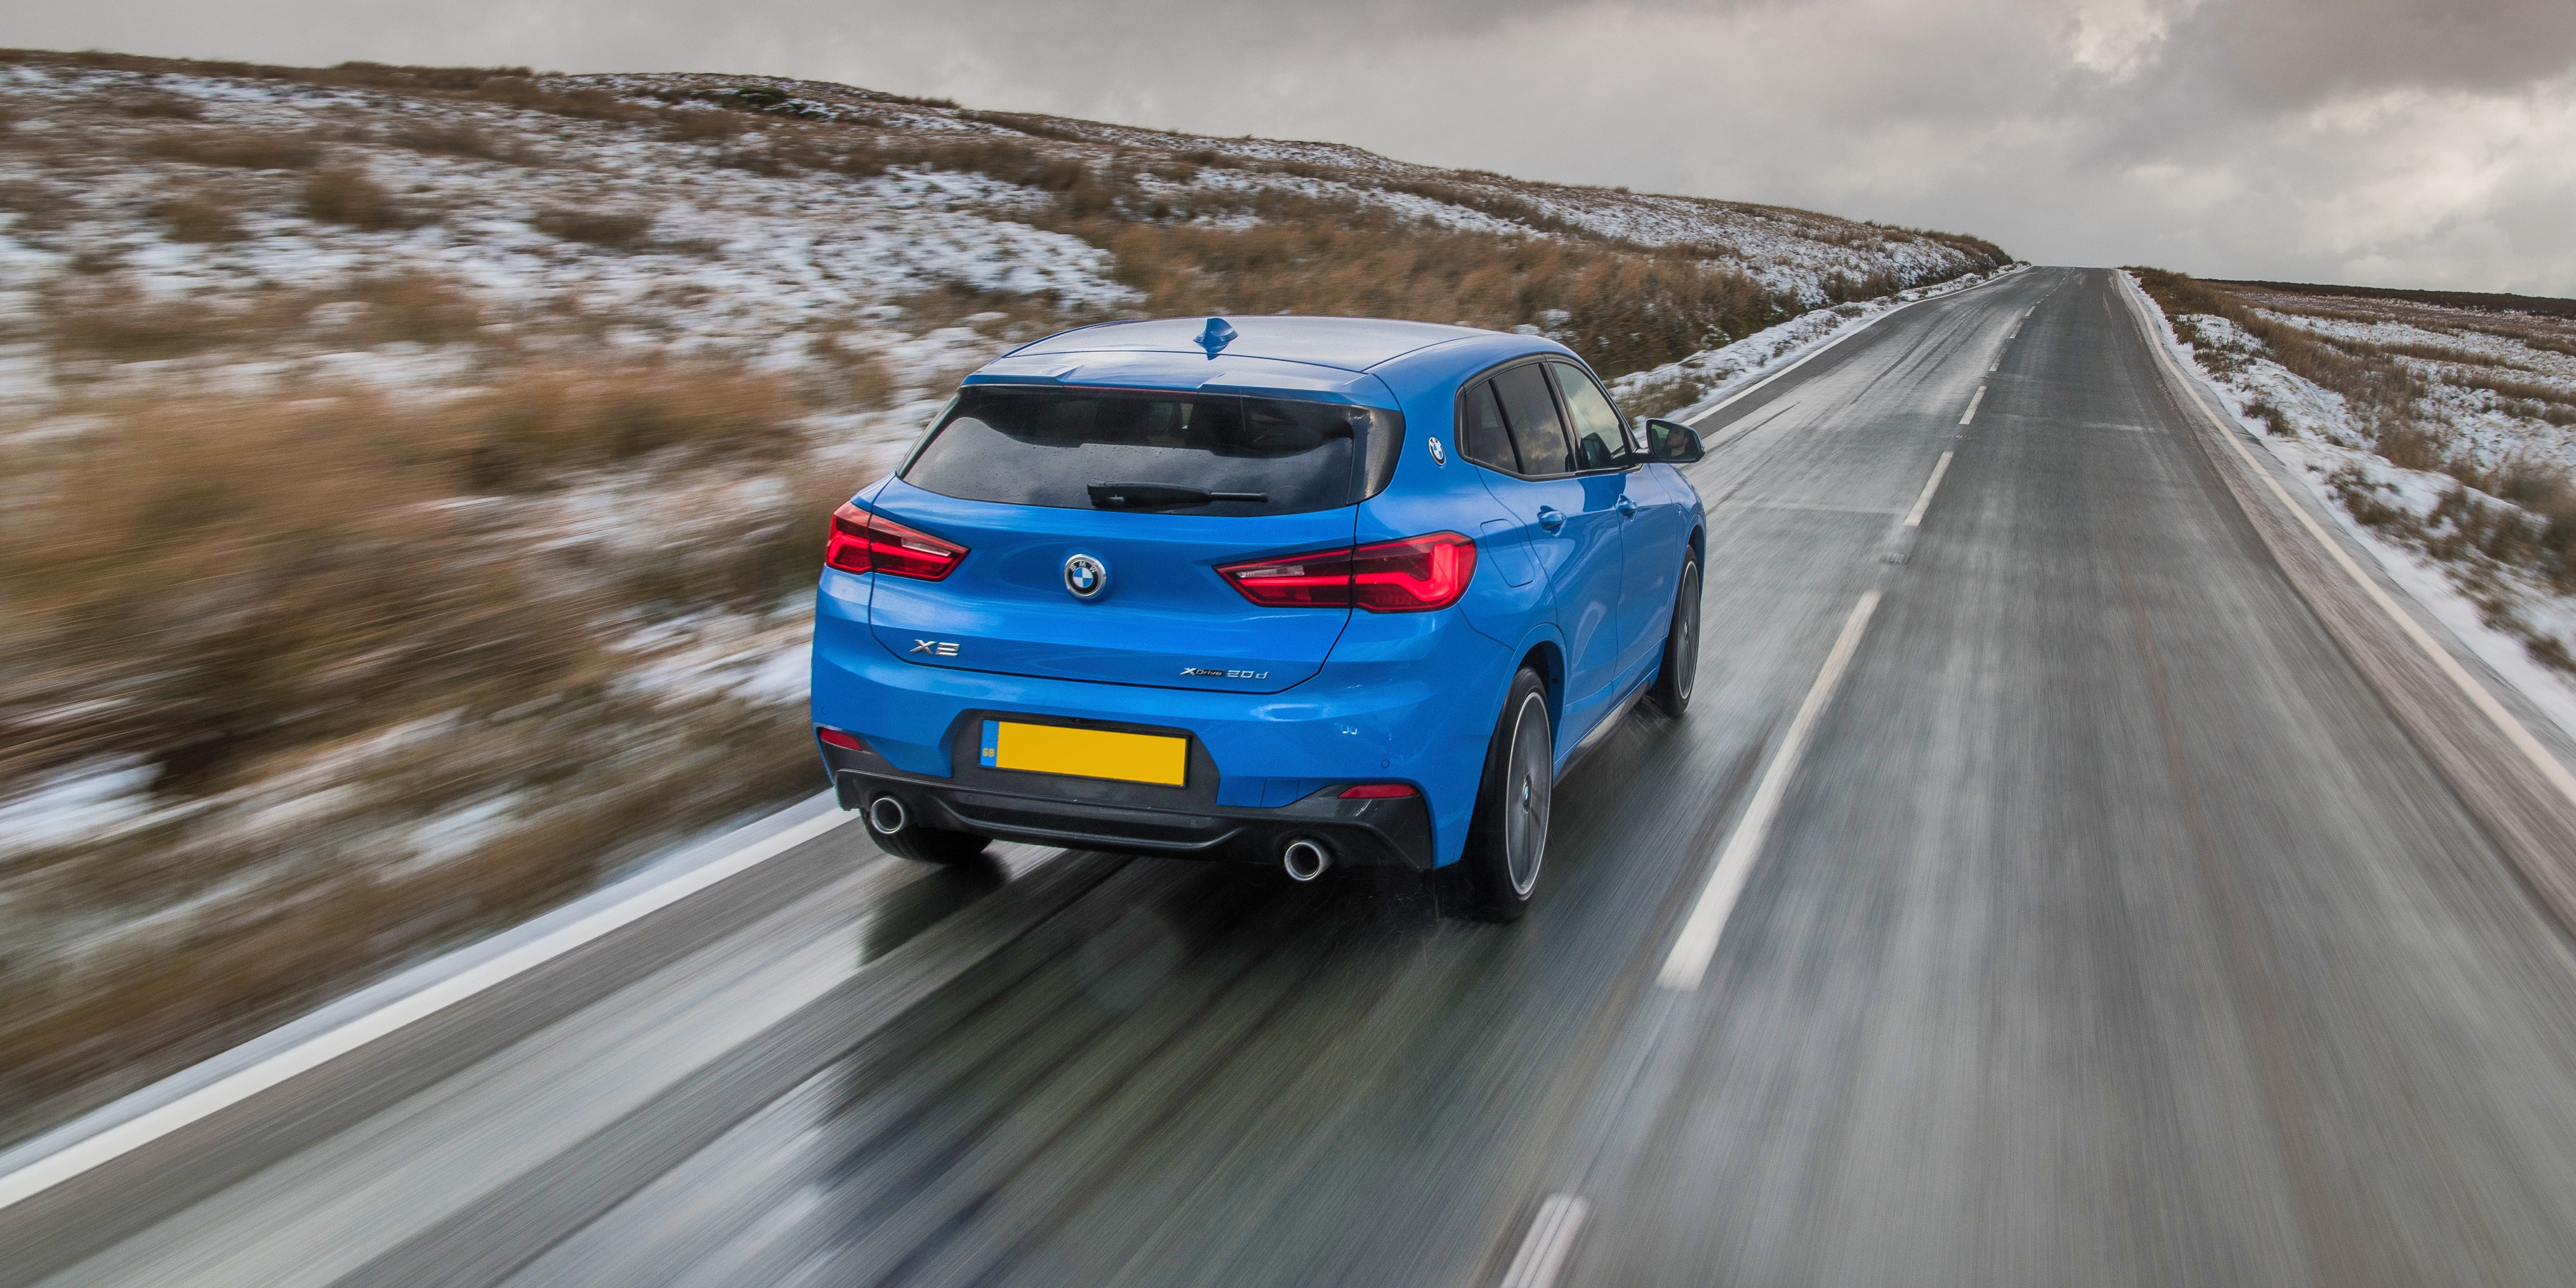 The X2's ride is quite firm on bumpy roads